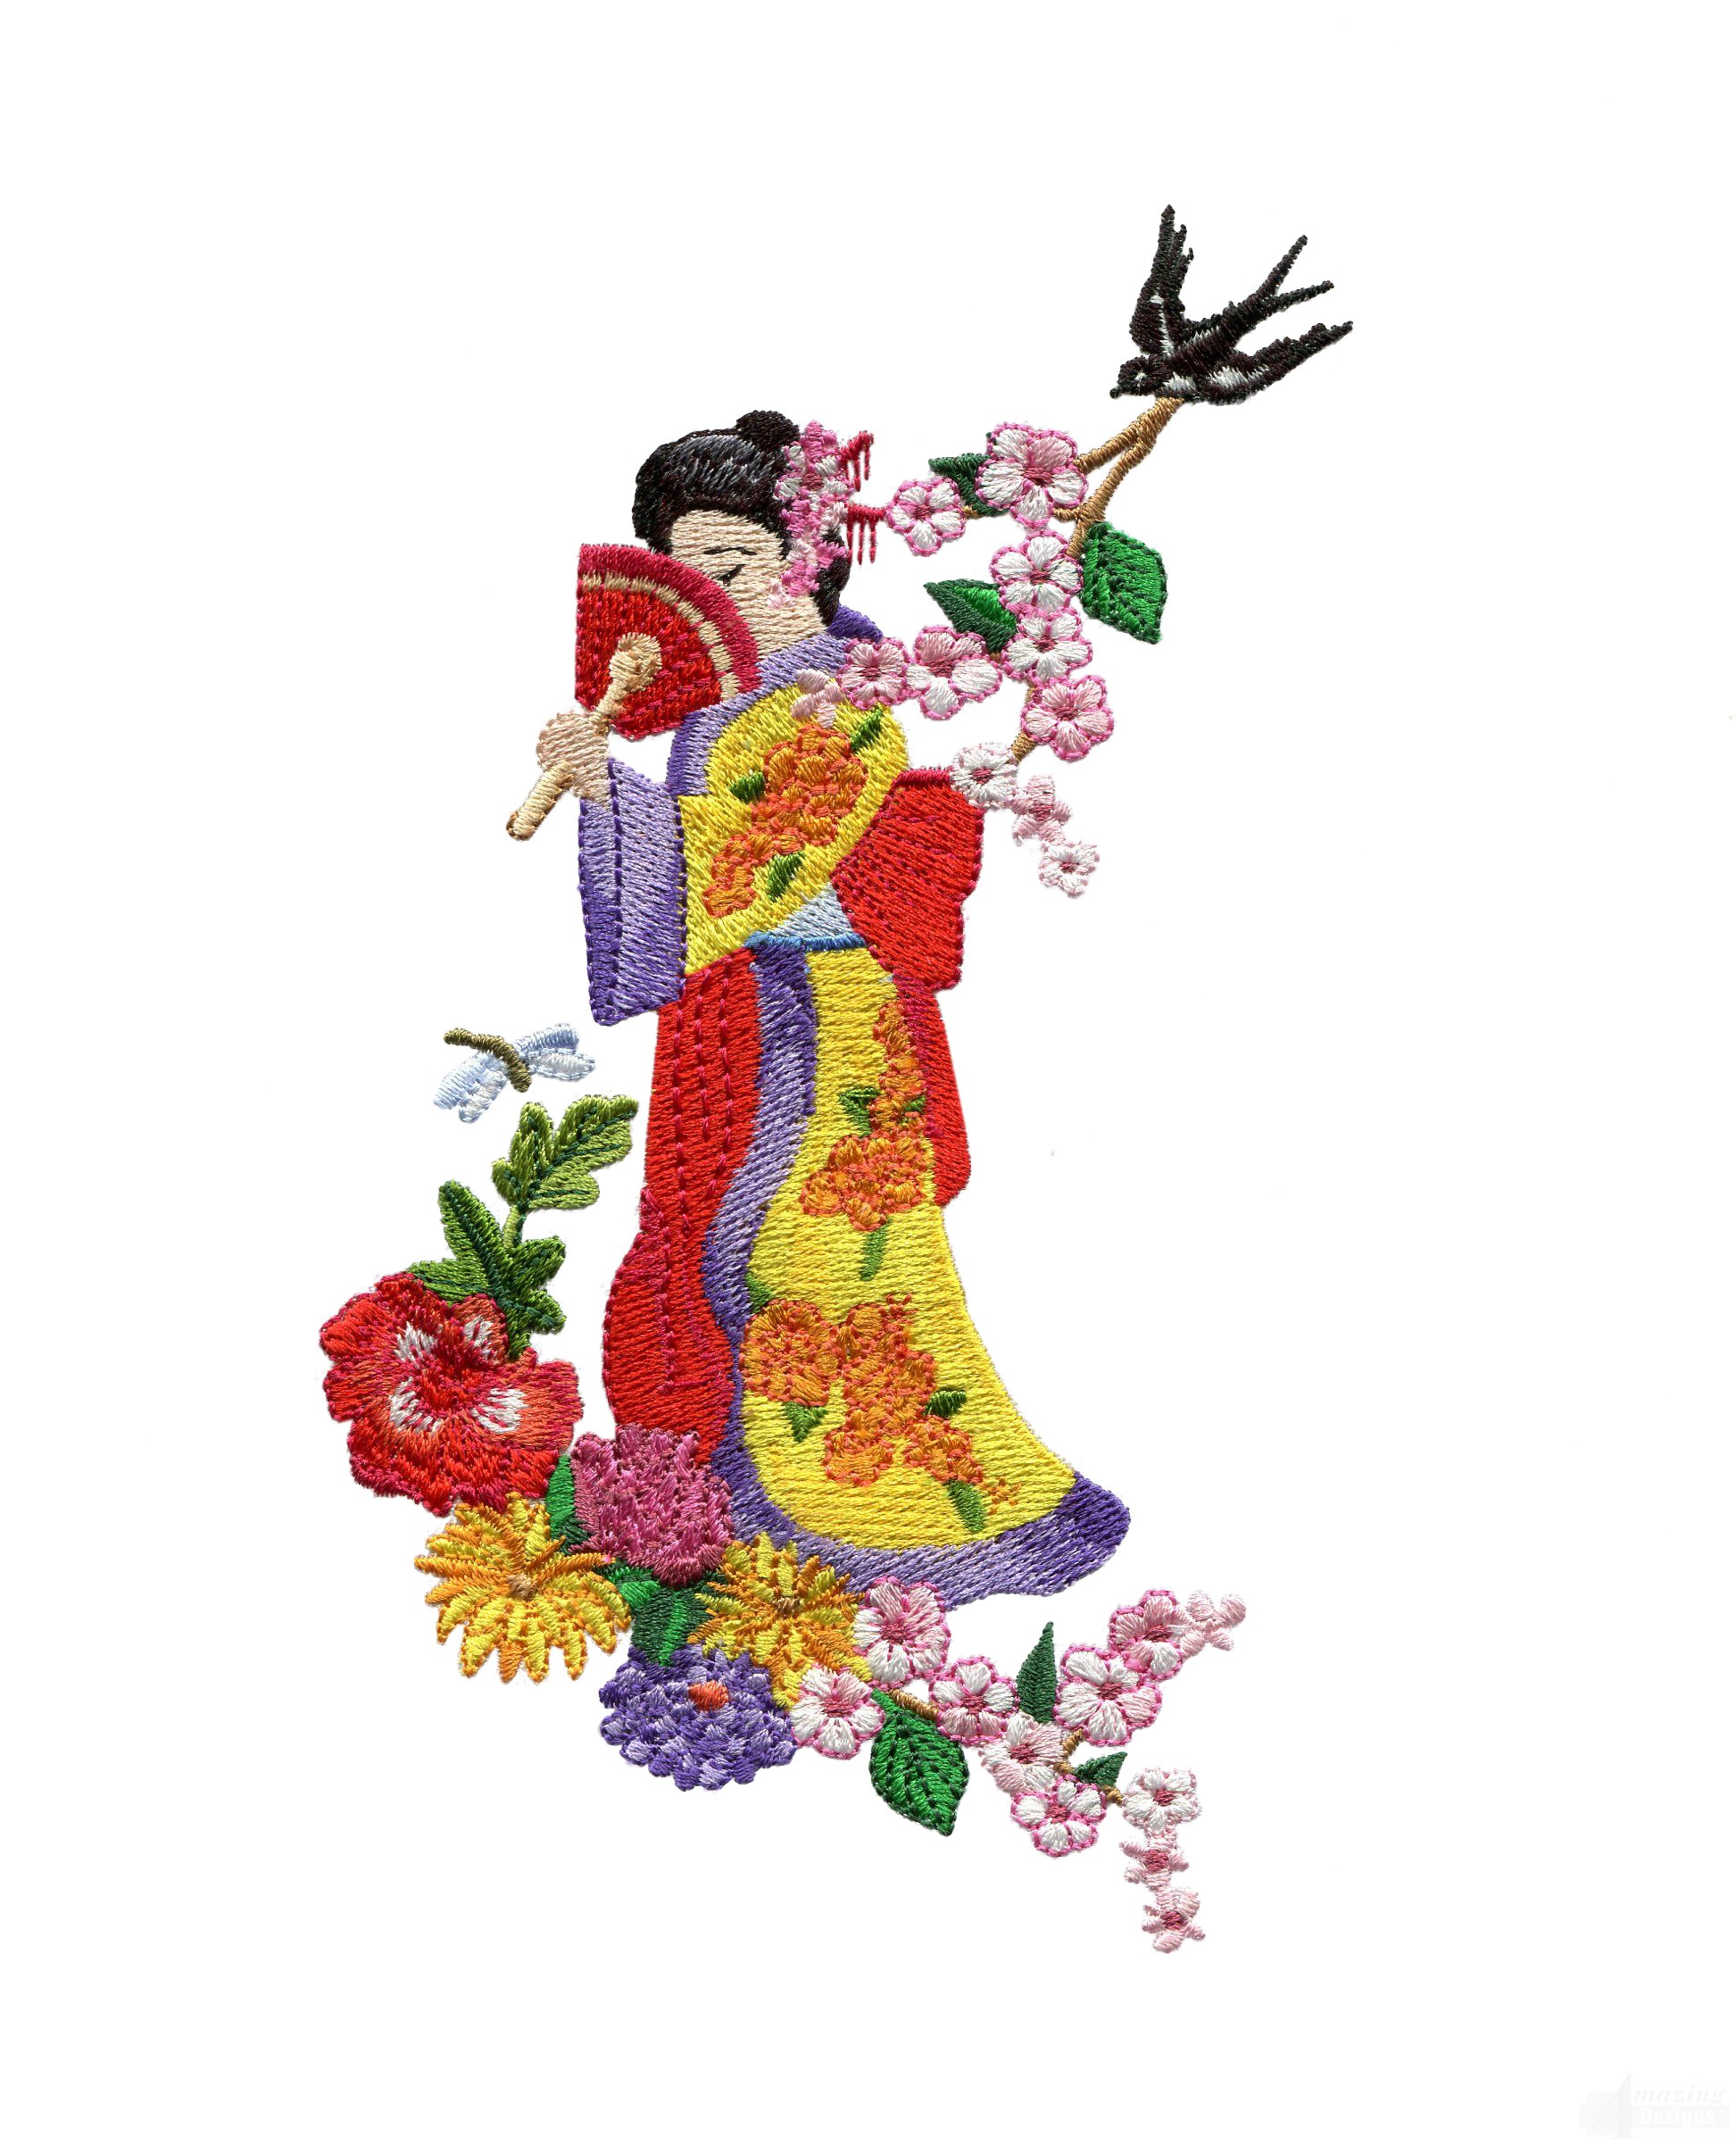 Swngg105 a geishas garden embroidery design for Garden embroidery designs free